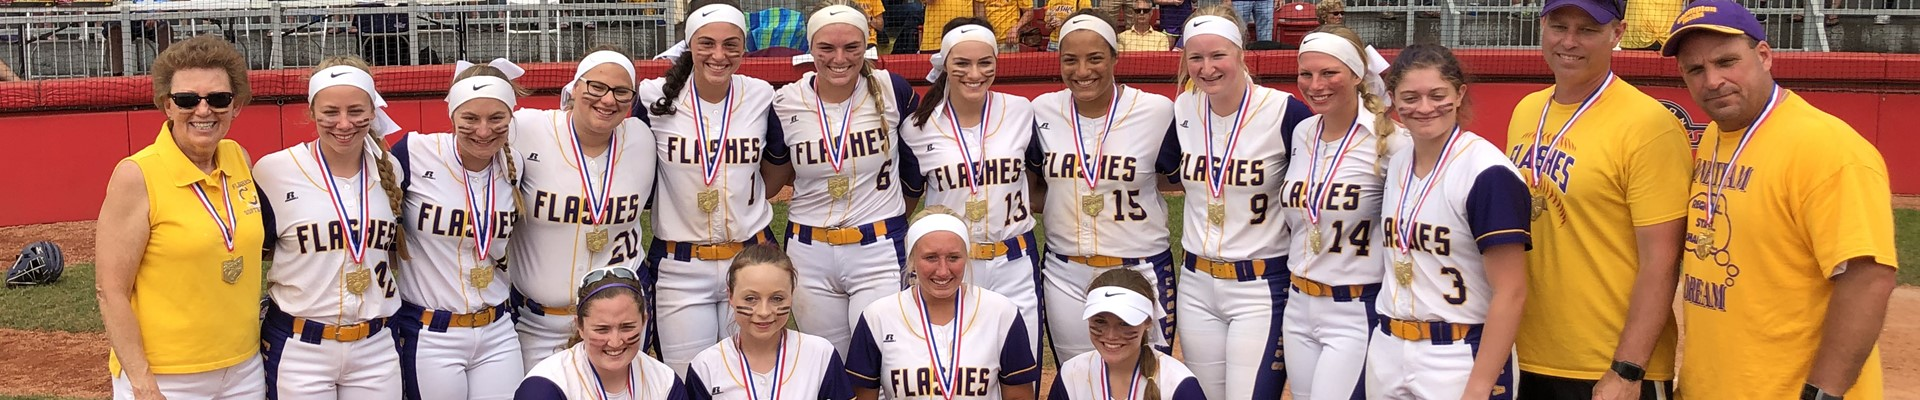 Lady Flashes Softball team and coaches posing after winning the state title.